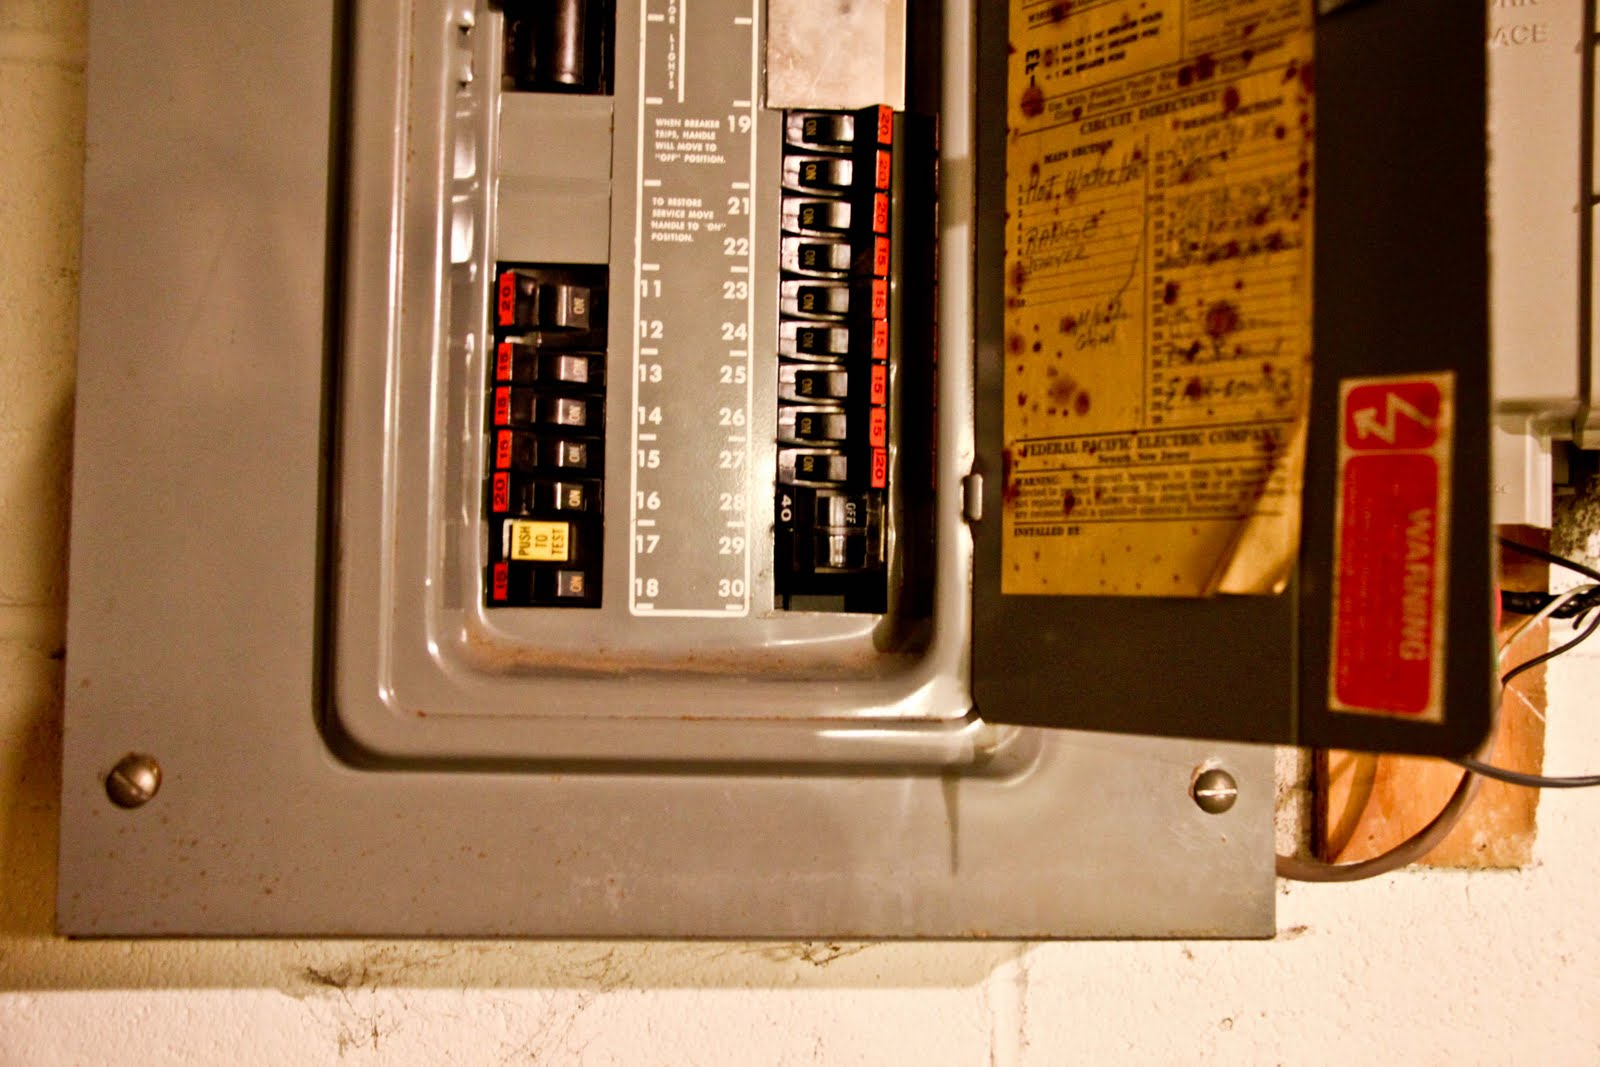 IMG_4614 replacing fuse on central ac unit work space how to reset fuse box in house at n-0.co